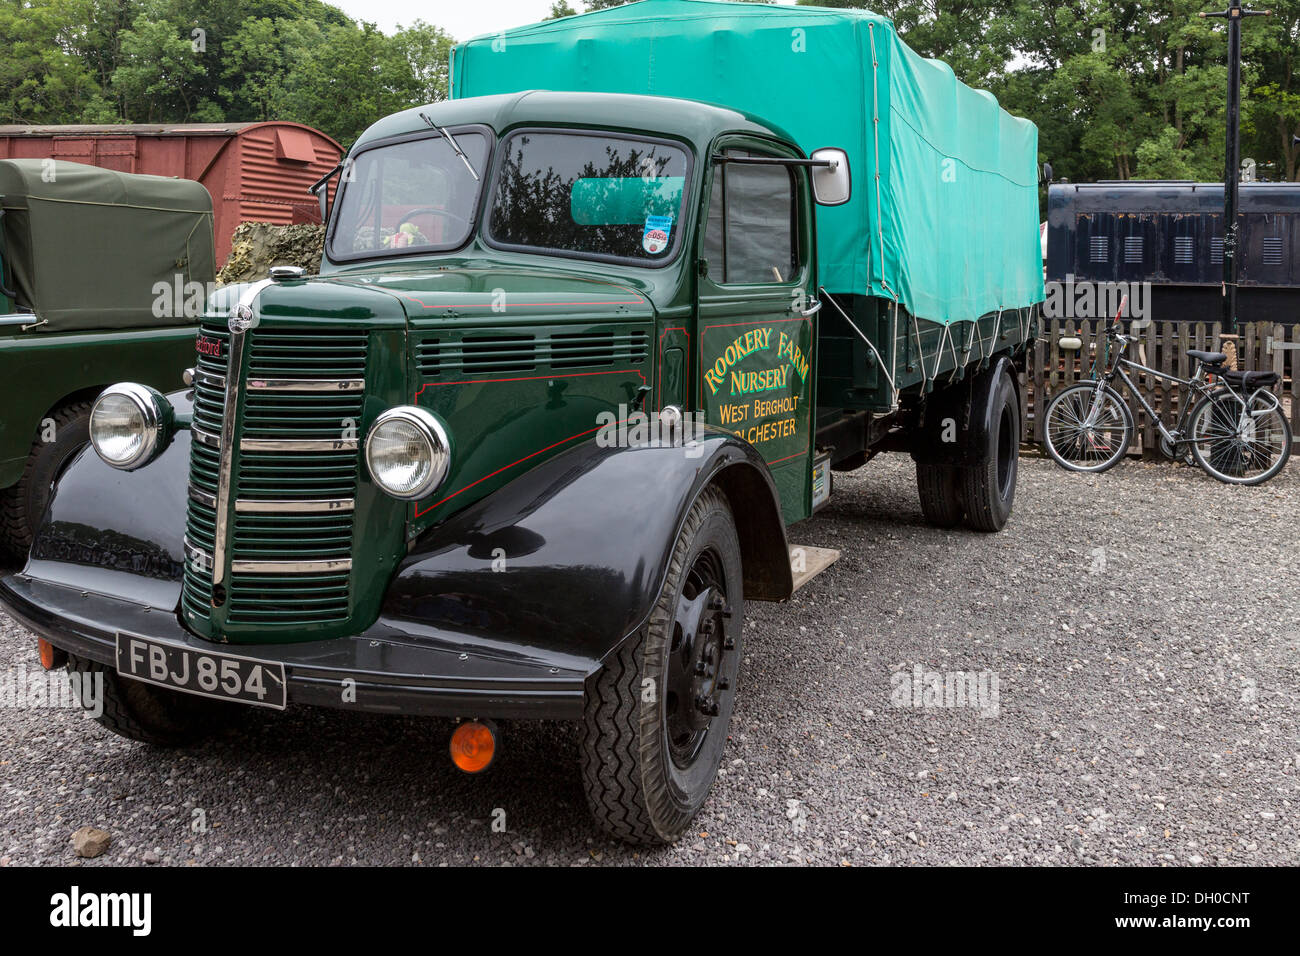 1946 Bedford OLB Dropside, FBJ854, on display at the Whitwell & Reepham Steam Rally, Norfolk, UK. - Stock Image